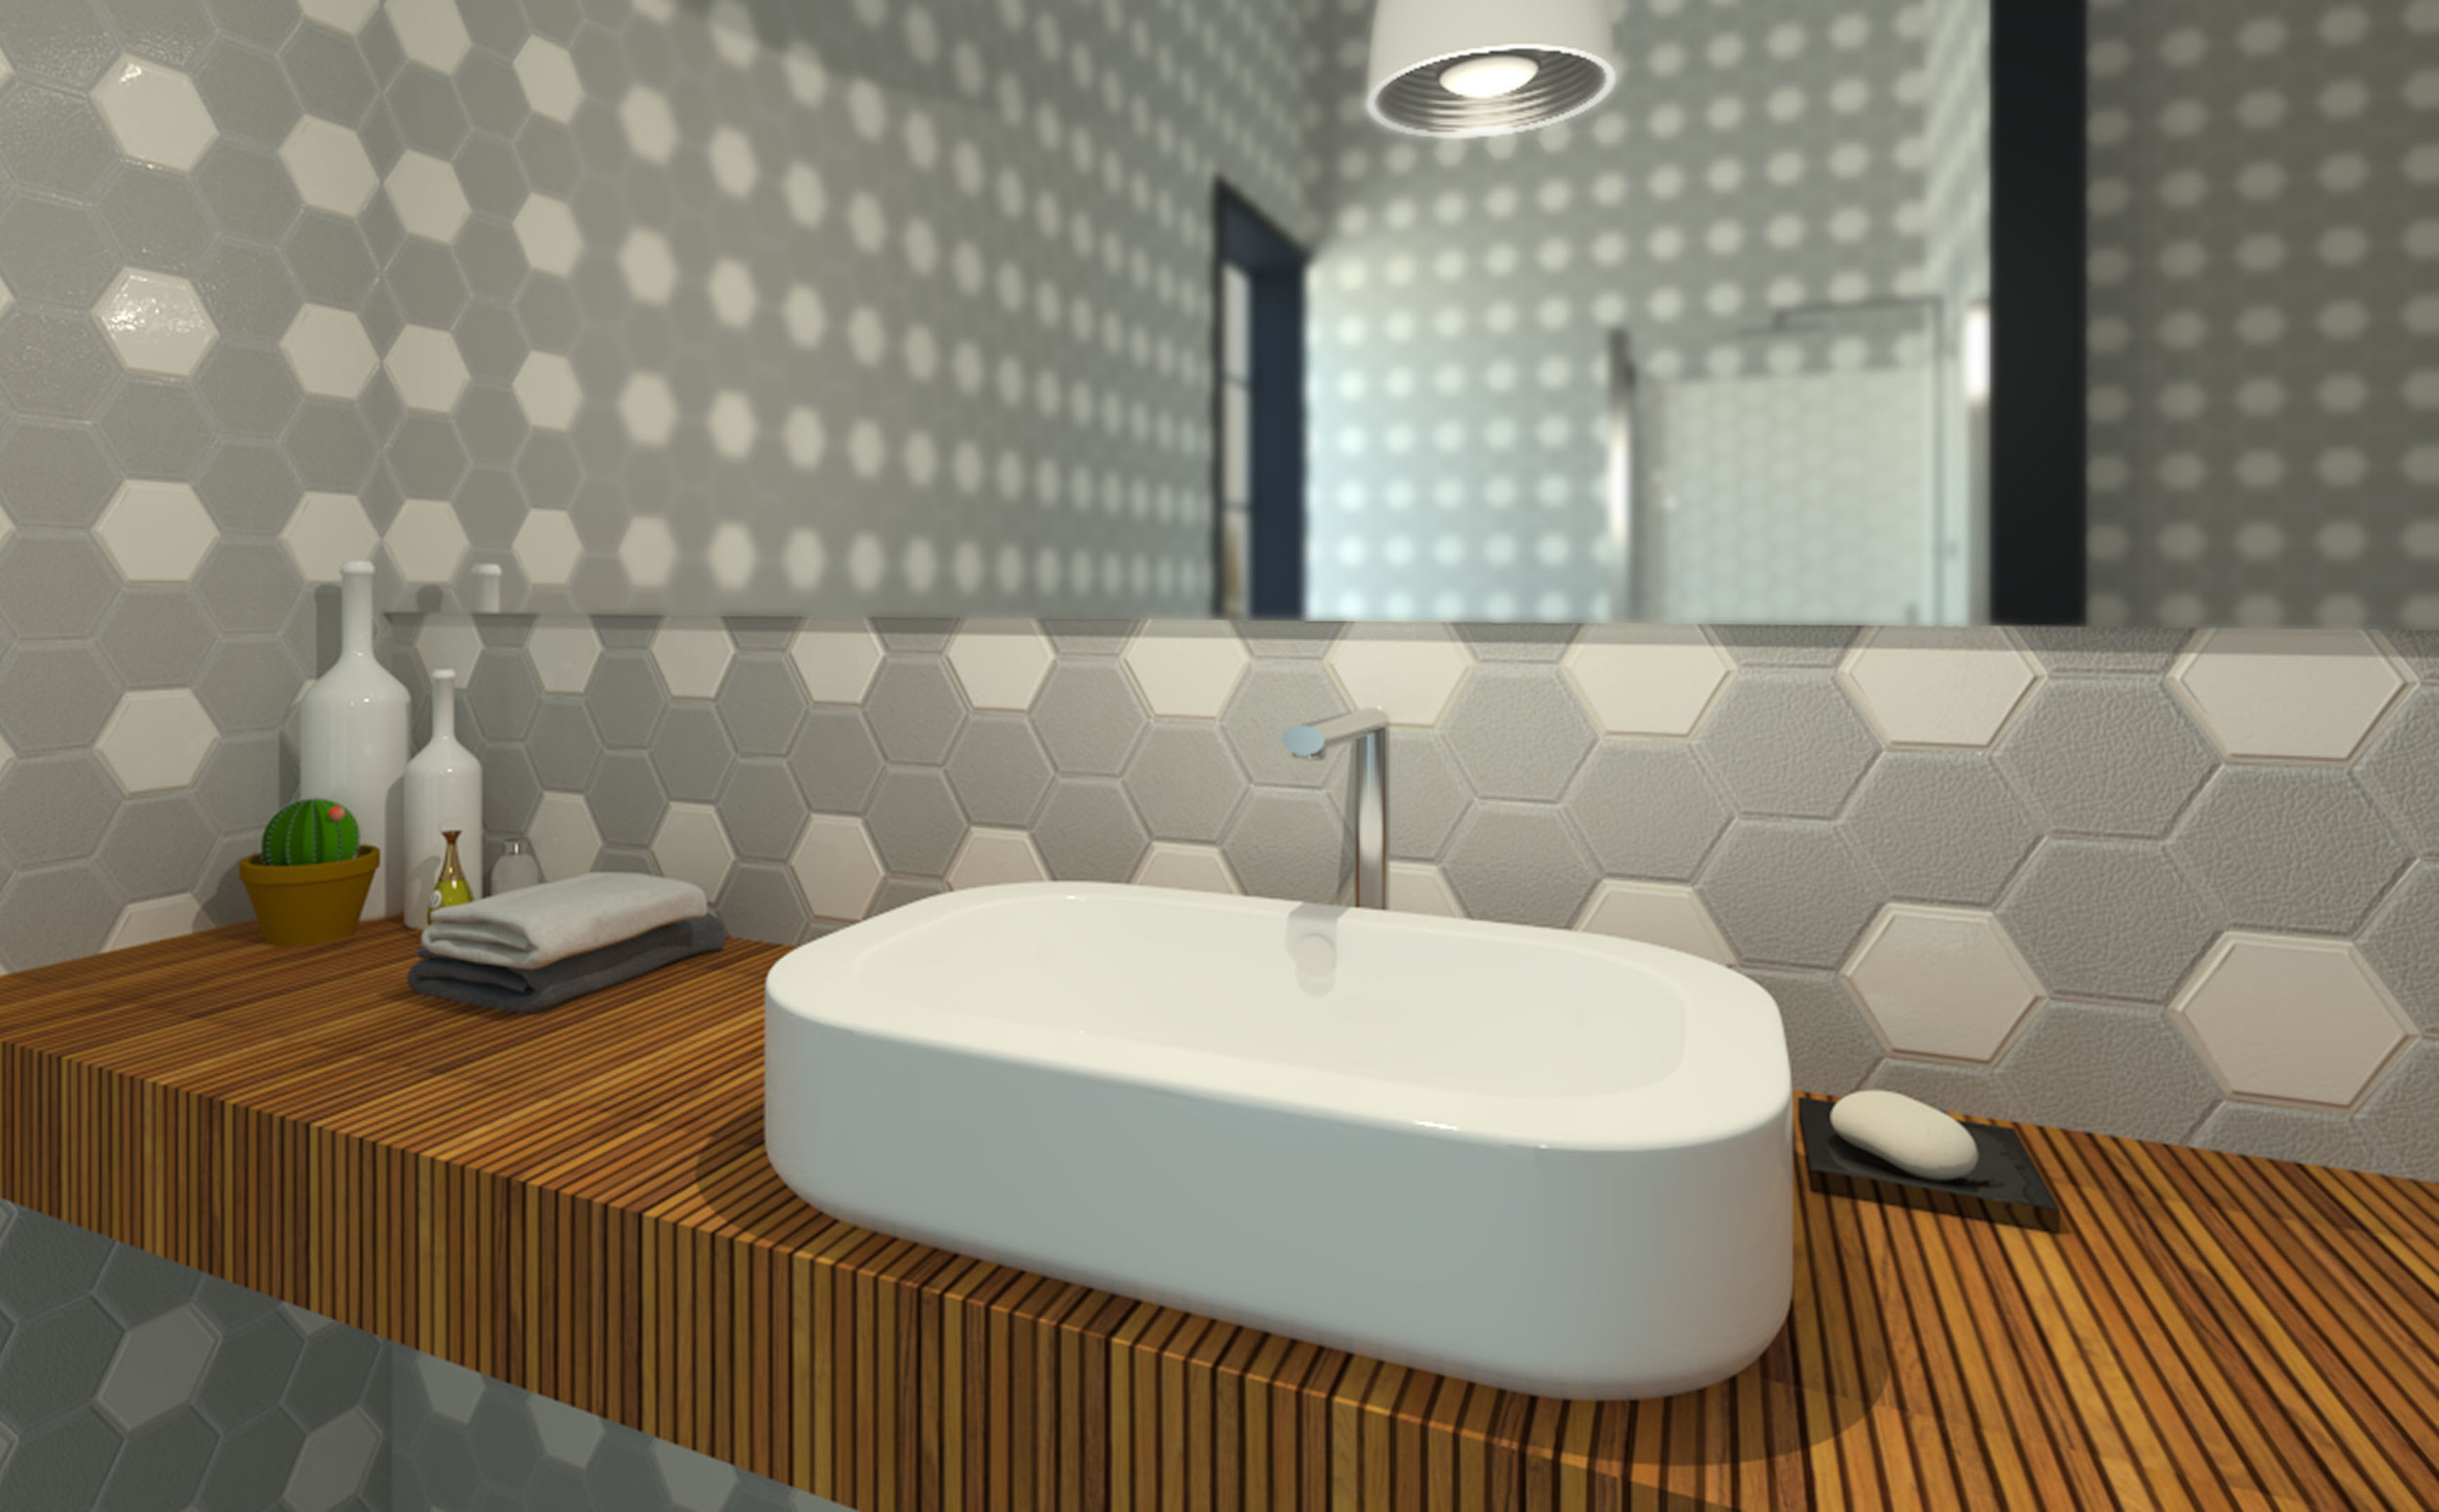 Hexagon_Bathroom.jpg